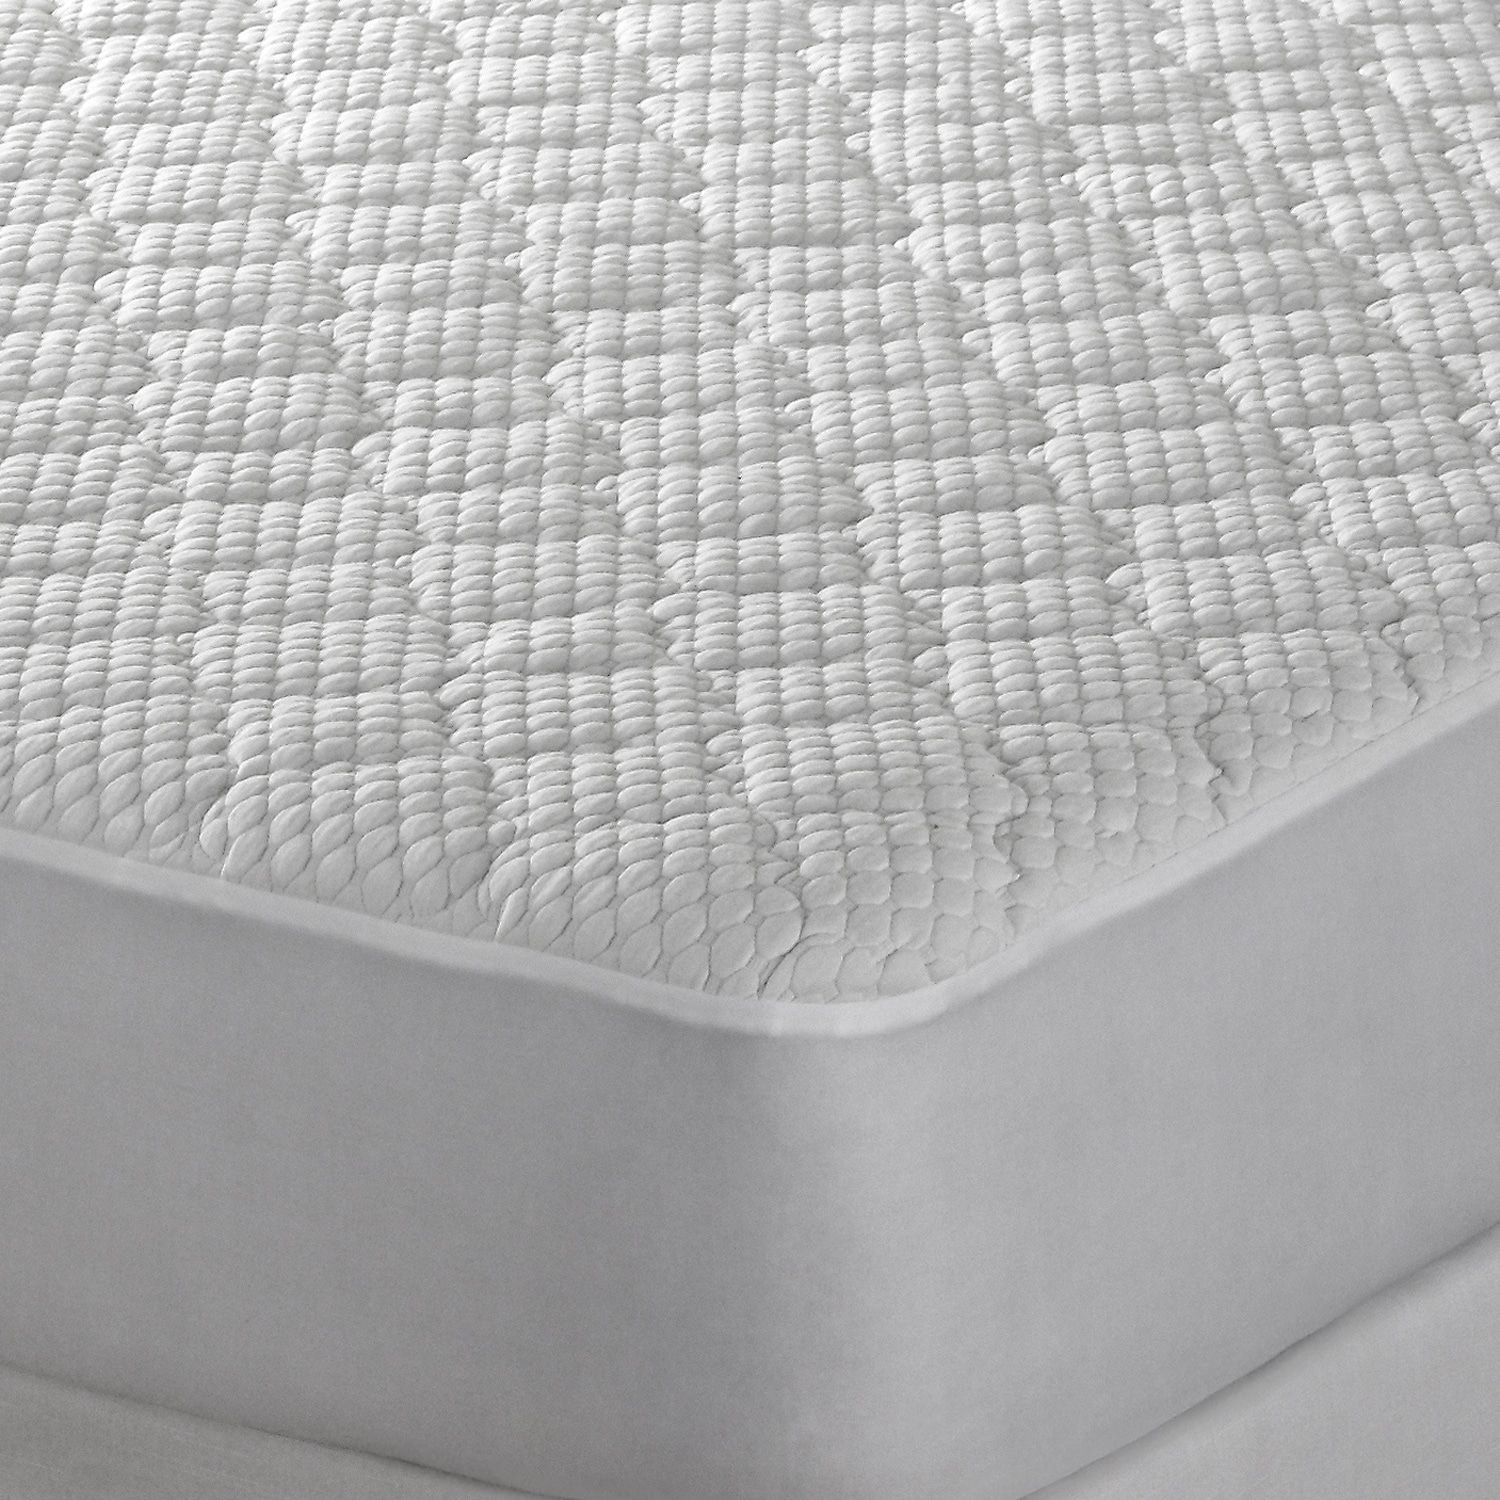 Hotel Laundry Comfort Cushion Memory Foam Mattress Pad Affiliate Comfort Affiliate Cushion Hote Memory Foam Mattress Pad Foam Mattress Pad Mattress Pad